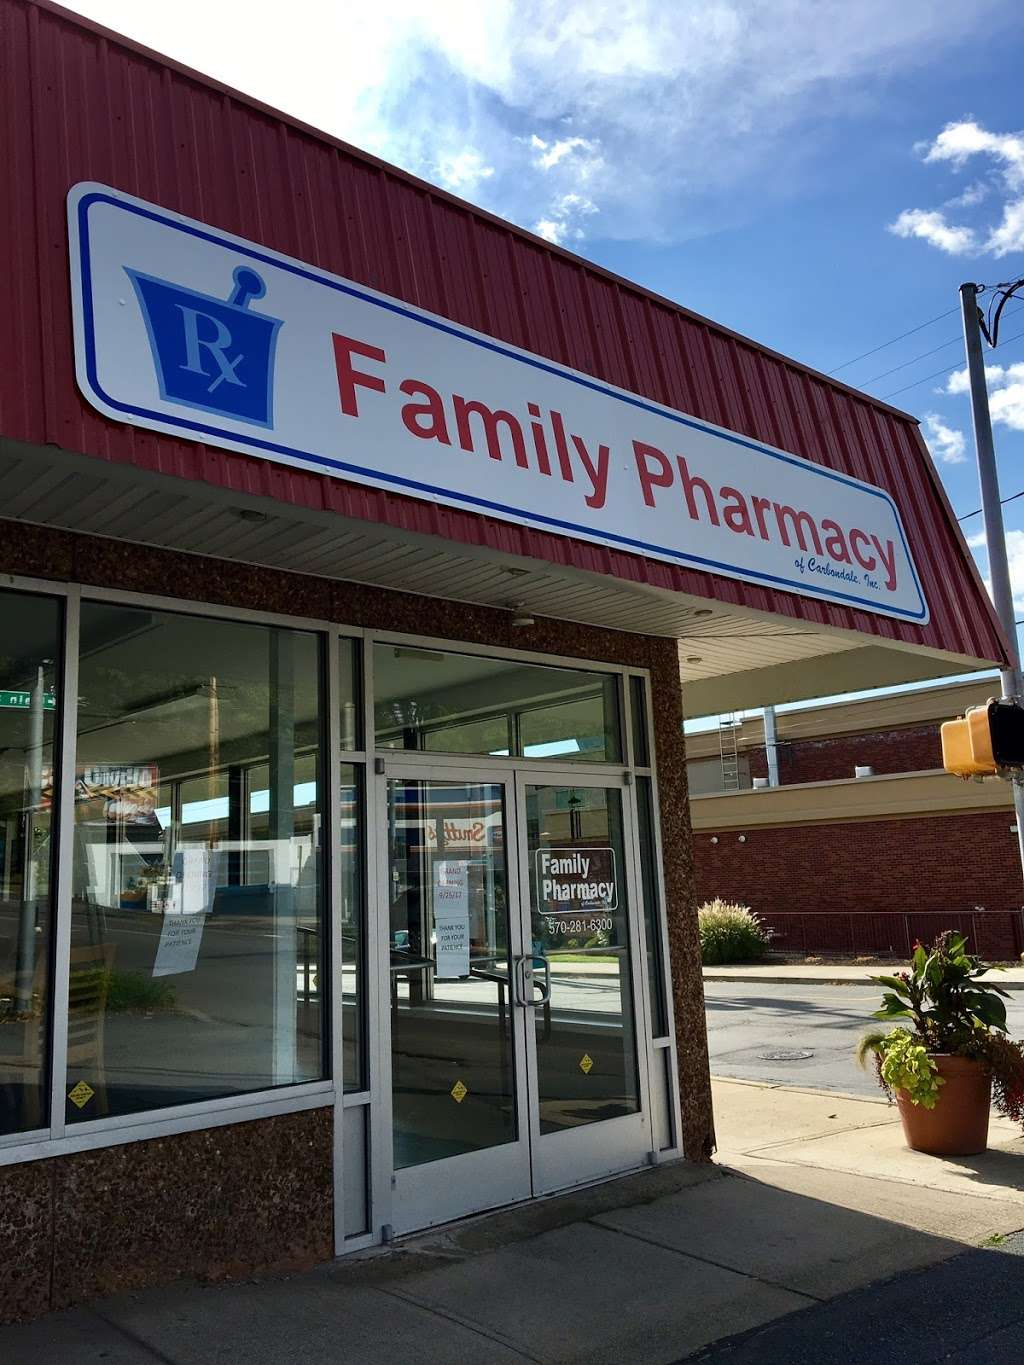 Family Pharmacy of Carbondale - pharmacy  | Photo 2 of 3 | Address: 70 N Church St, Carbondale, PA 18407, USA | Phone: (570) 281-6300